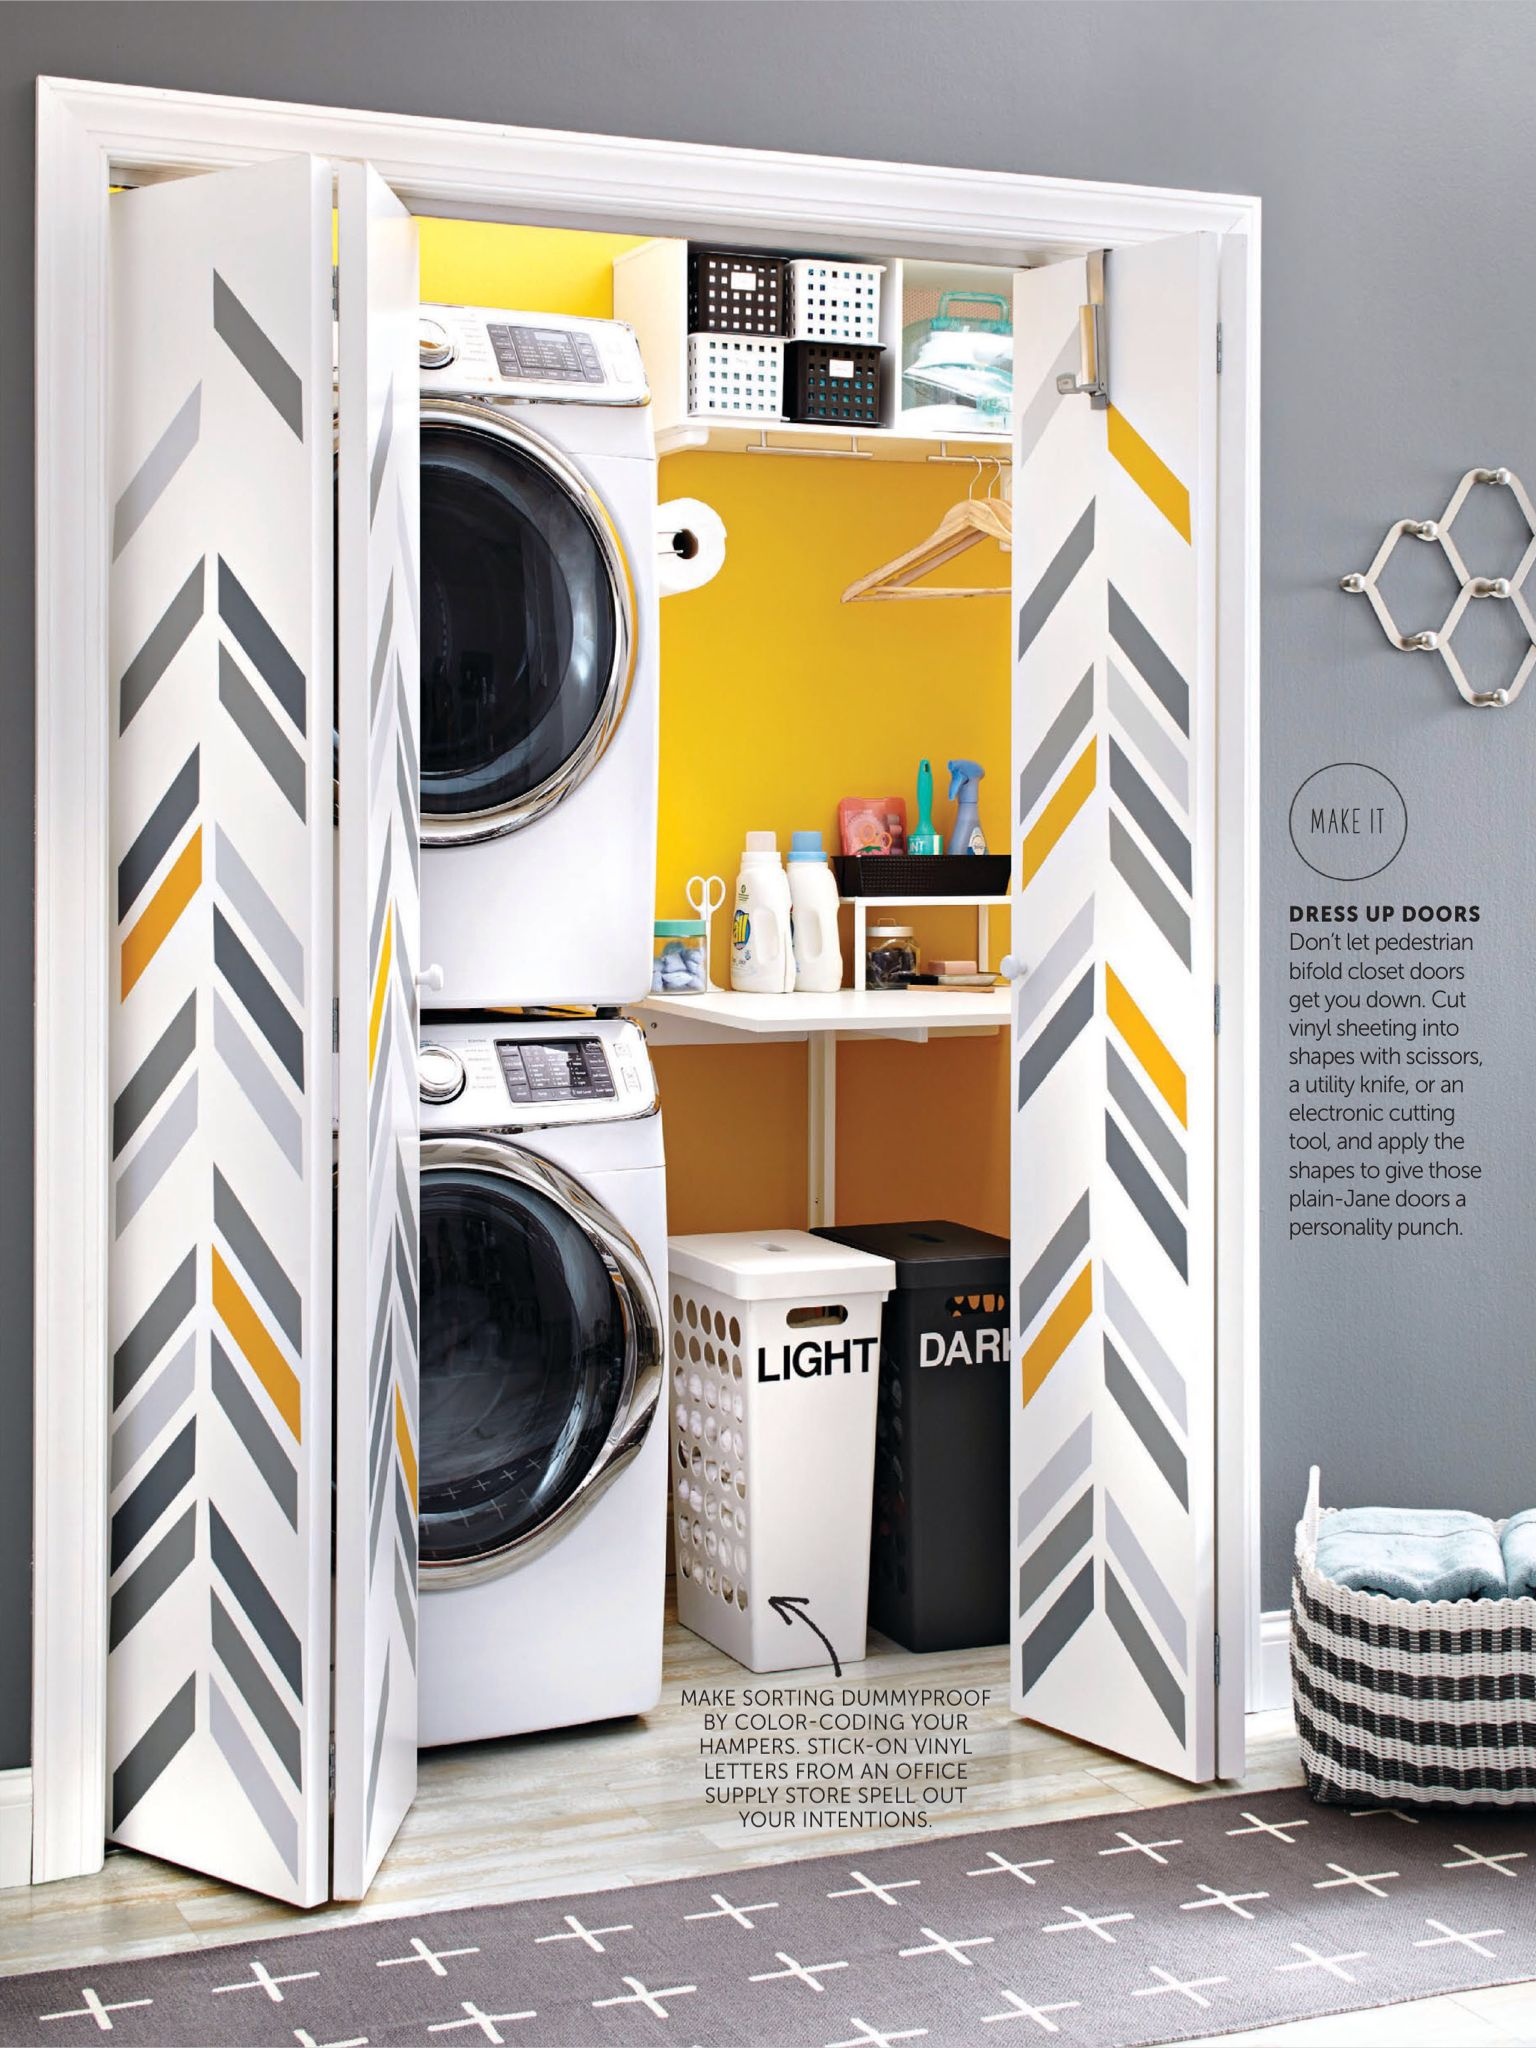 Wash dry fold from do it yourself magazine fall 2017 read it on wash dry fold from do it yourself magazine fall 2017 read it on the texture app unlimited access to 200 top magazines solutioingenieria Choice Image